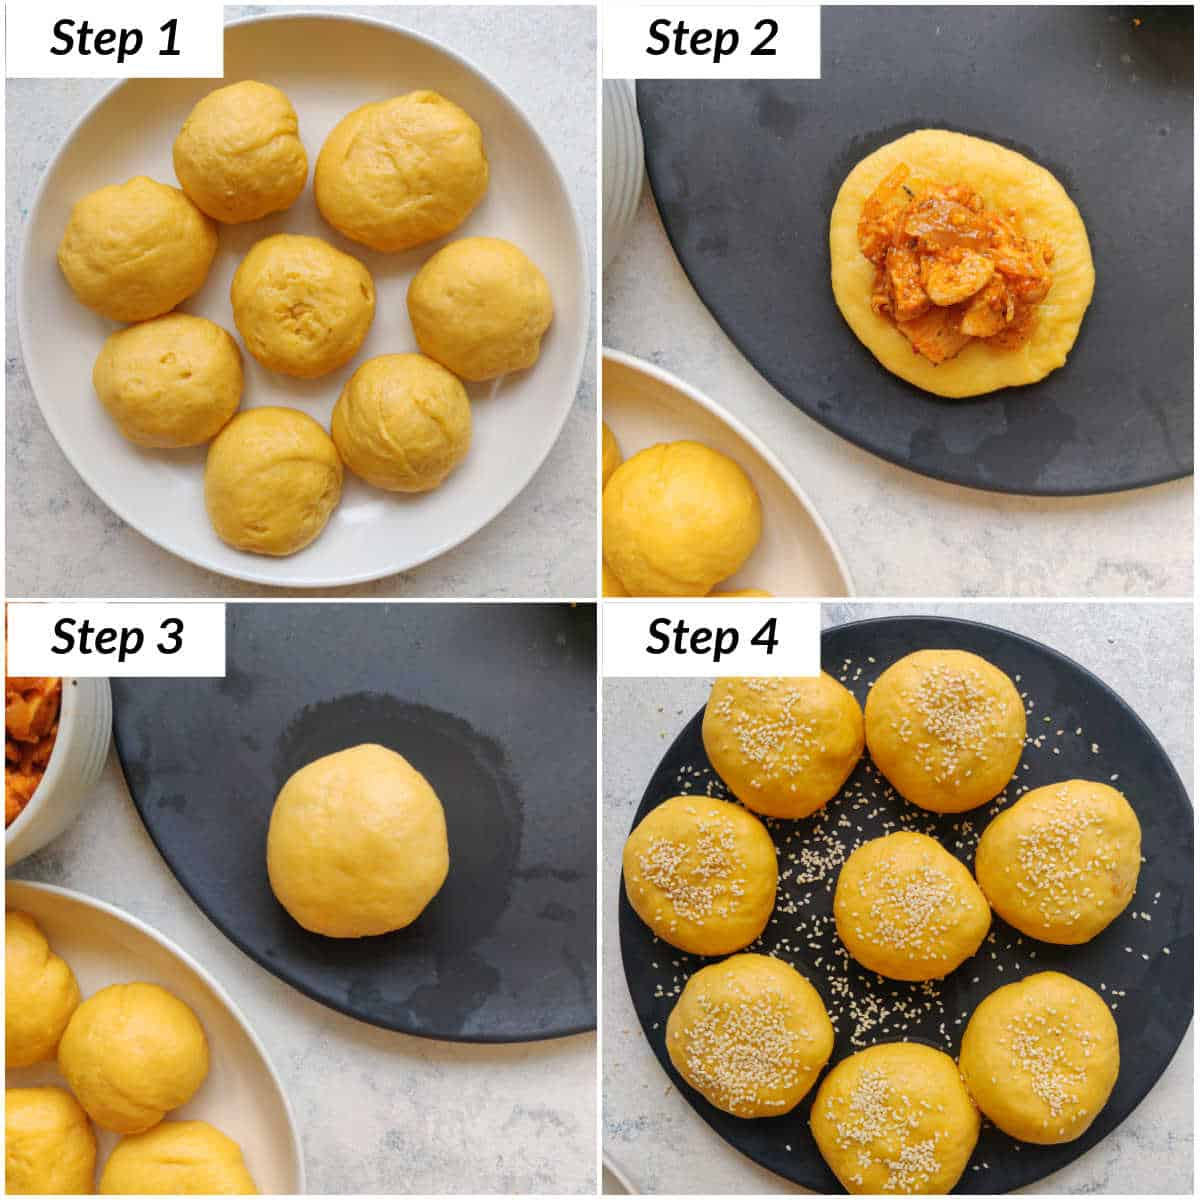 image collage showing the steps for assembling the spicy chicken stuffed buns